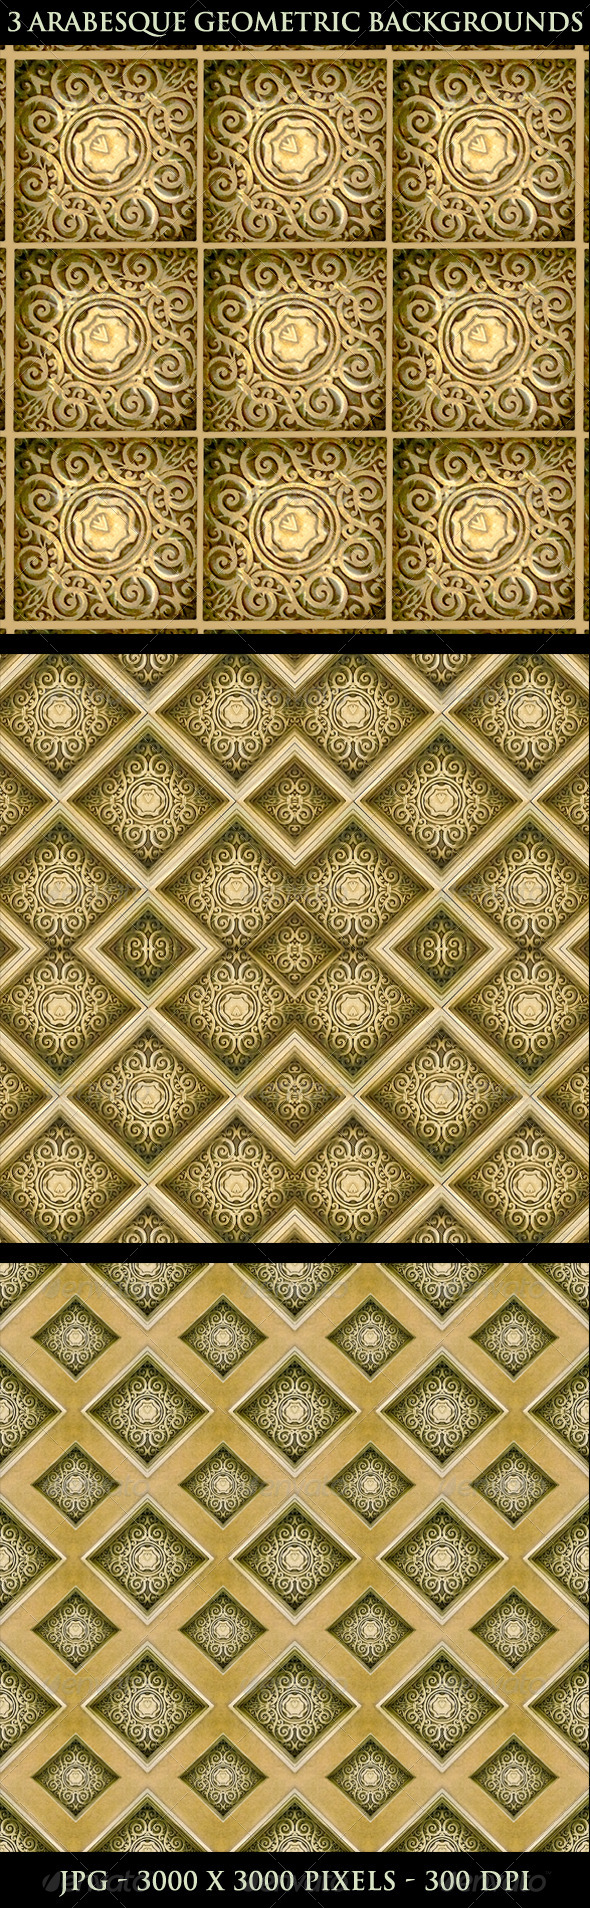 3 Arabesque Geometric Backgrounds